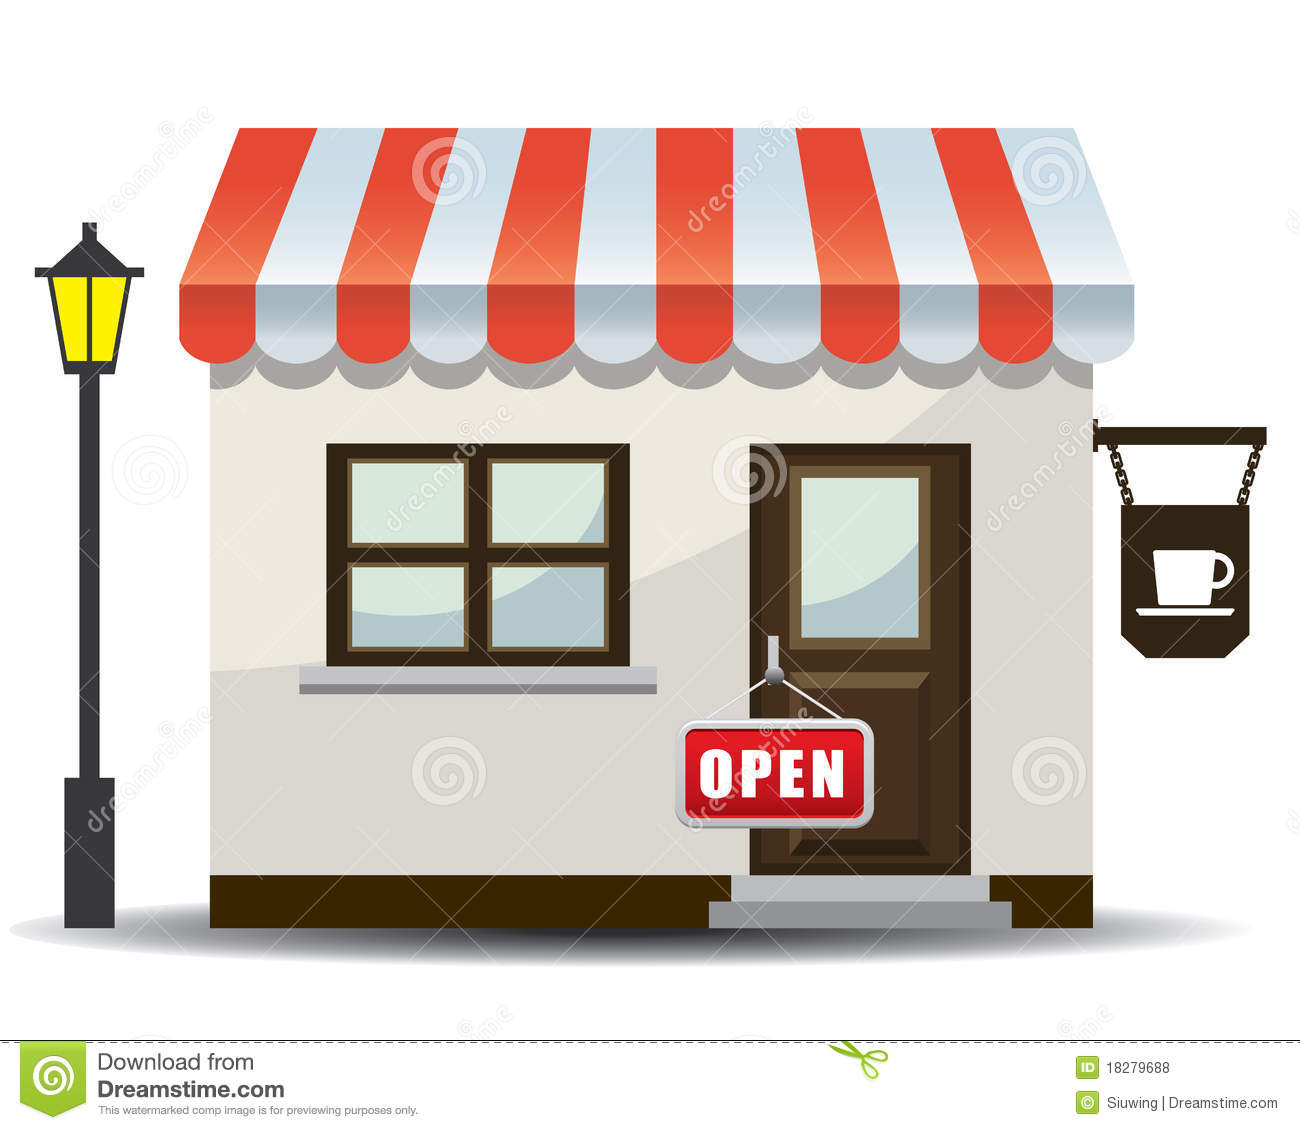 Restaurant building icon images small business